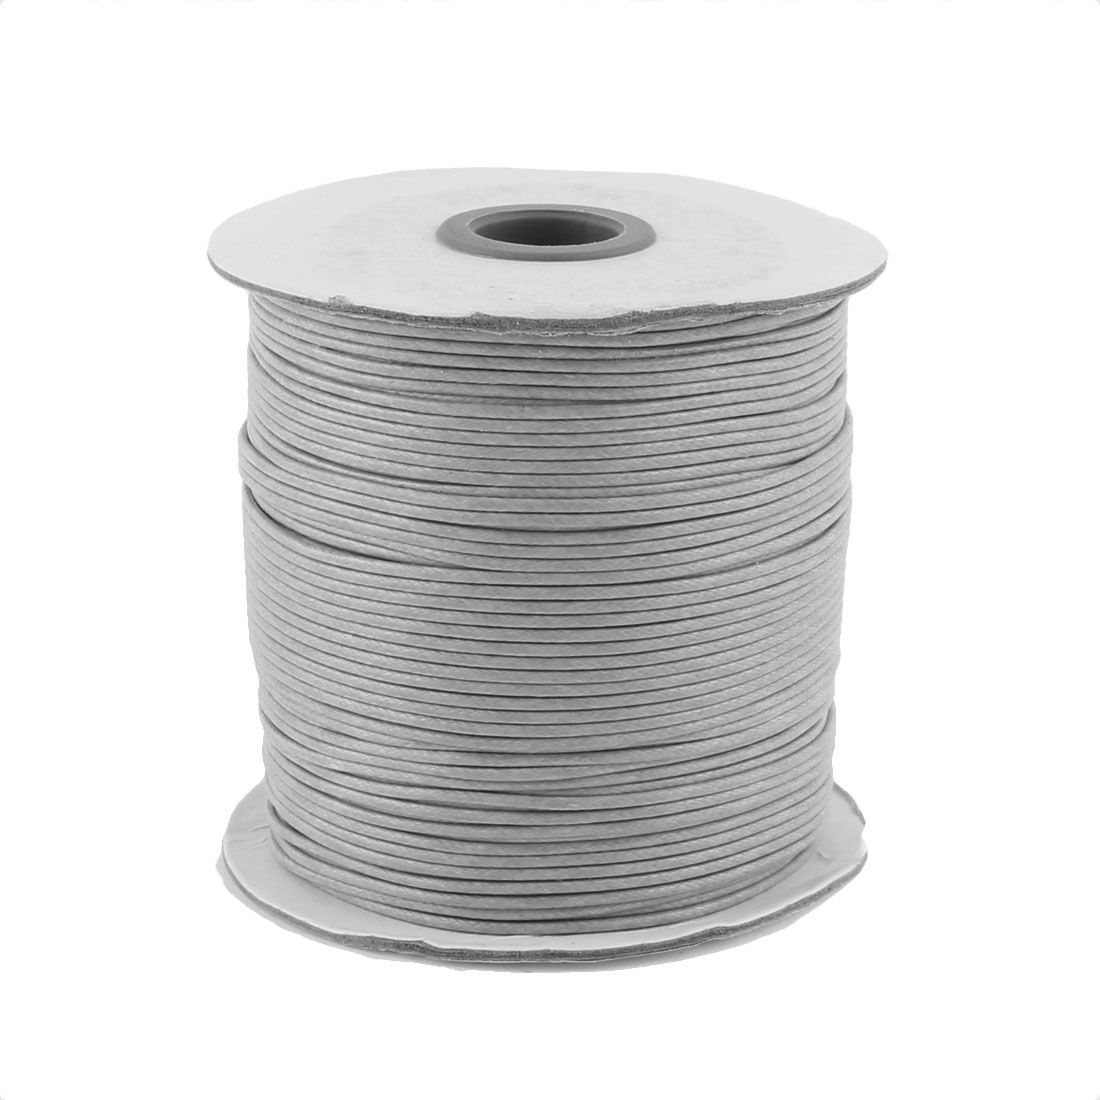 DIY Bracelet Necklace Cotton Waxed Making String Beading Thread Cord Roll Gray 190 Yard